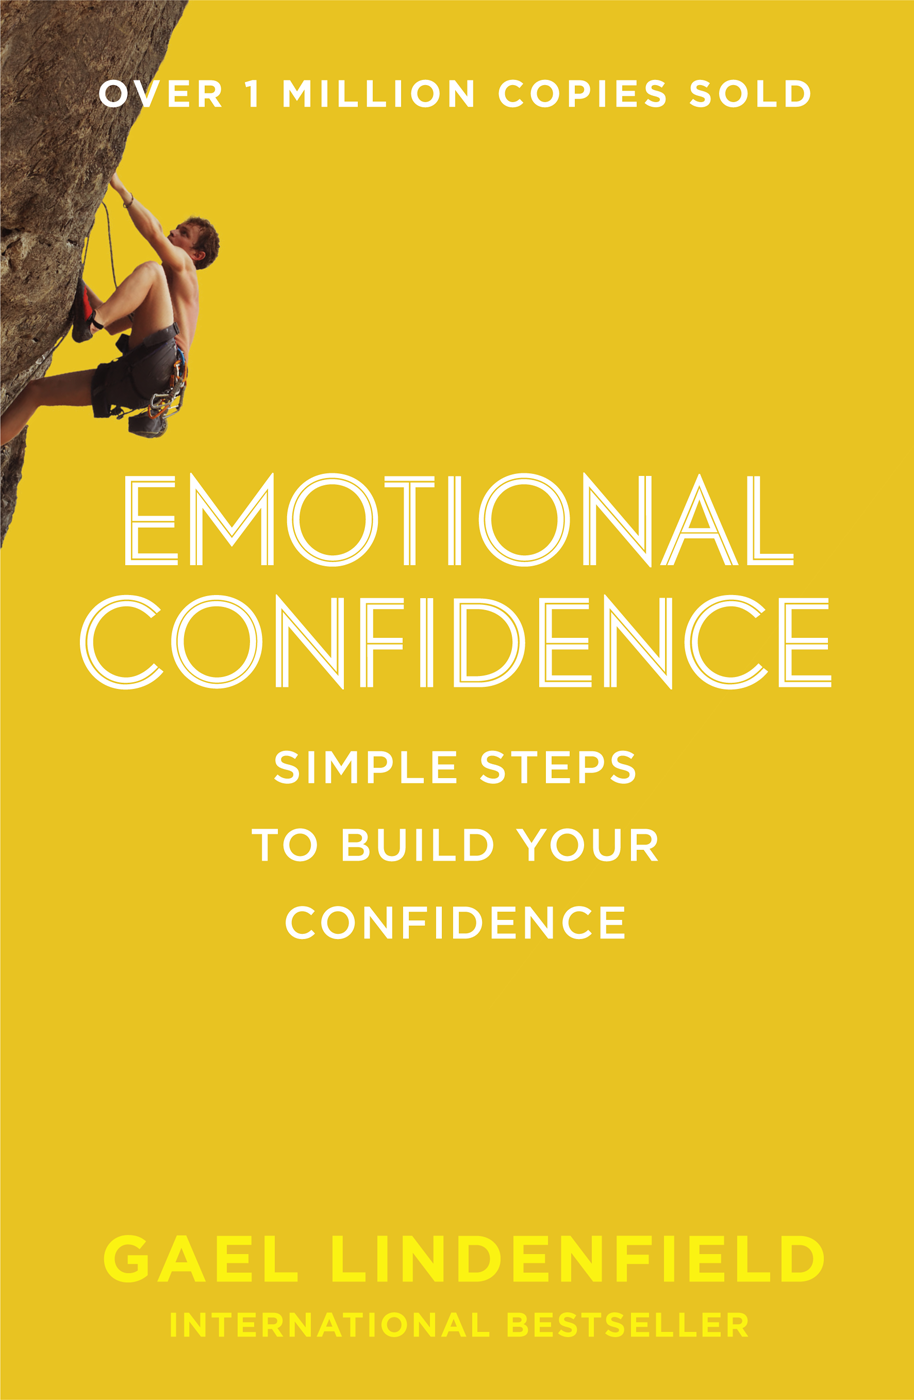 Gael Lindenfield Emotional Confidence: Simple Steps to Build Your Confidence gael lindenfield assert yourself simple steps to build your confidence